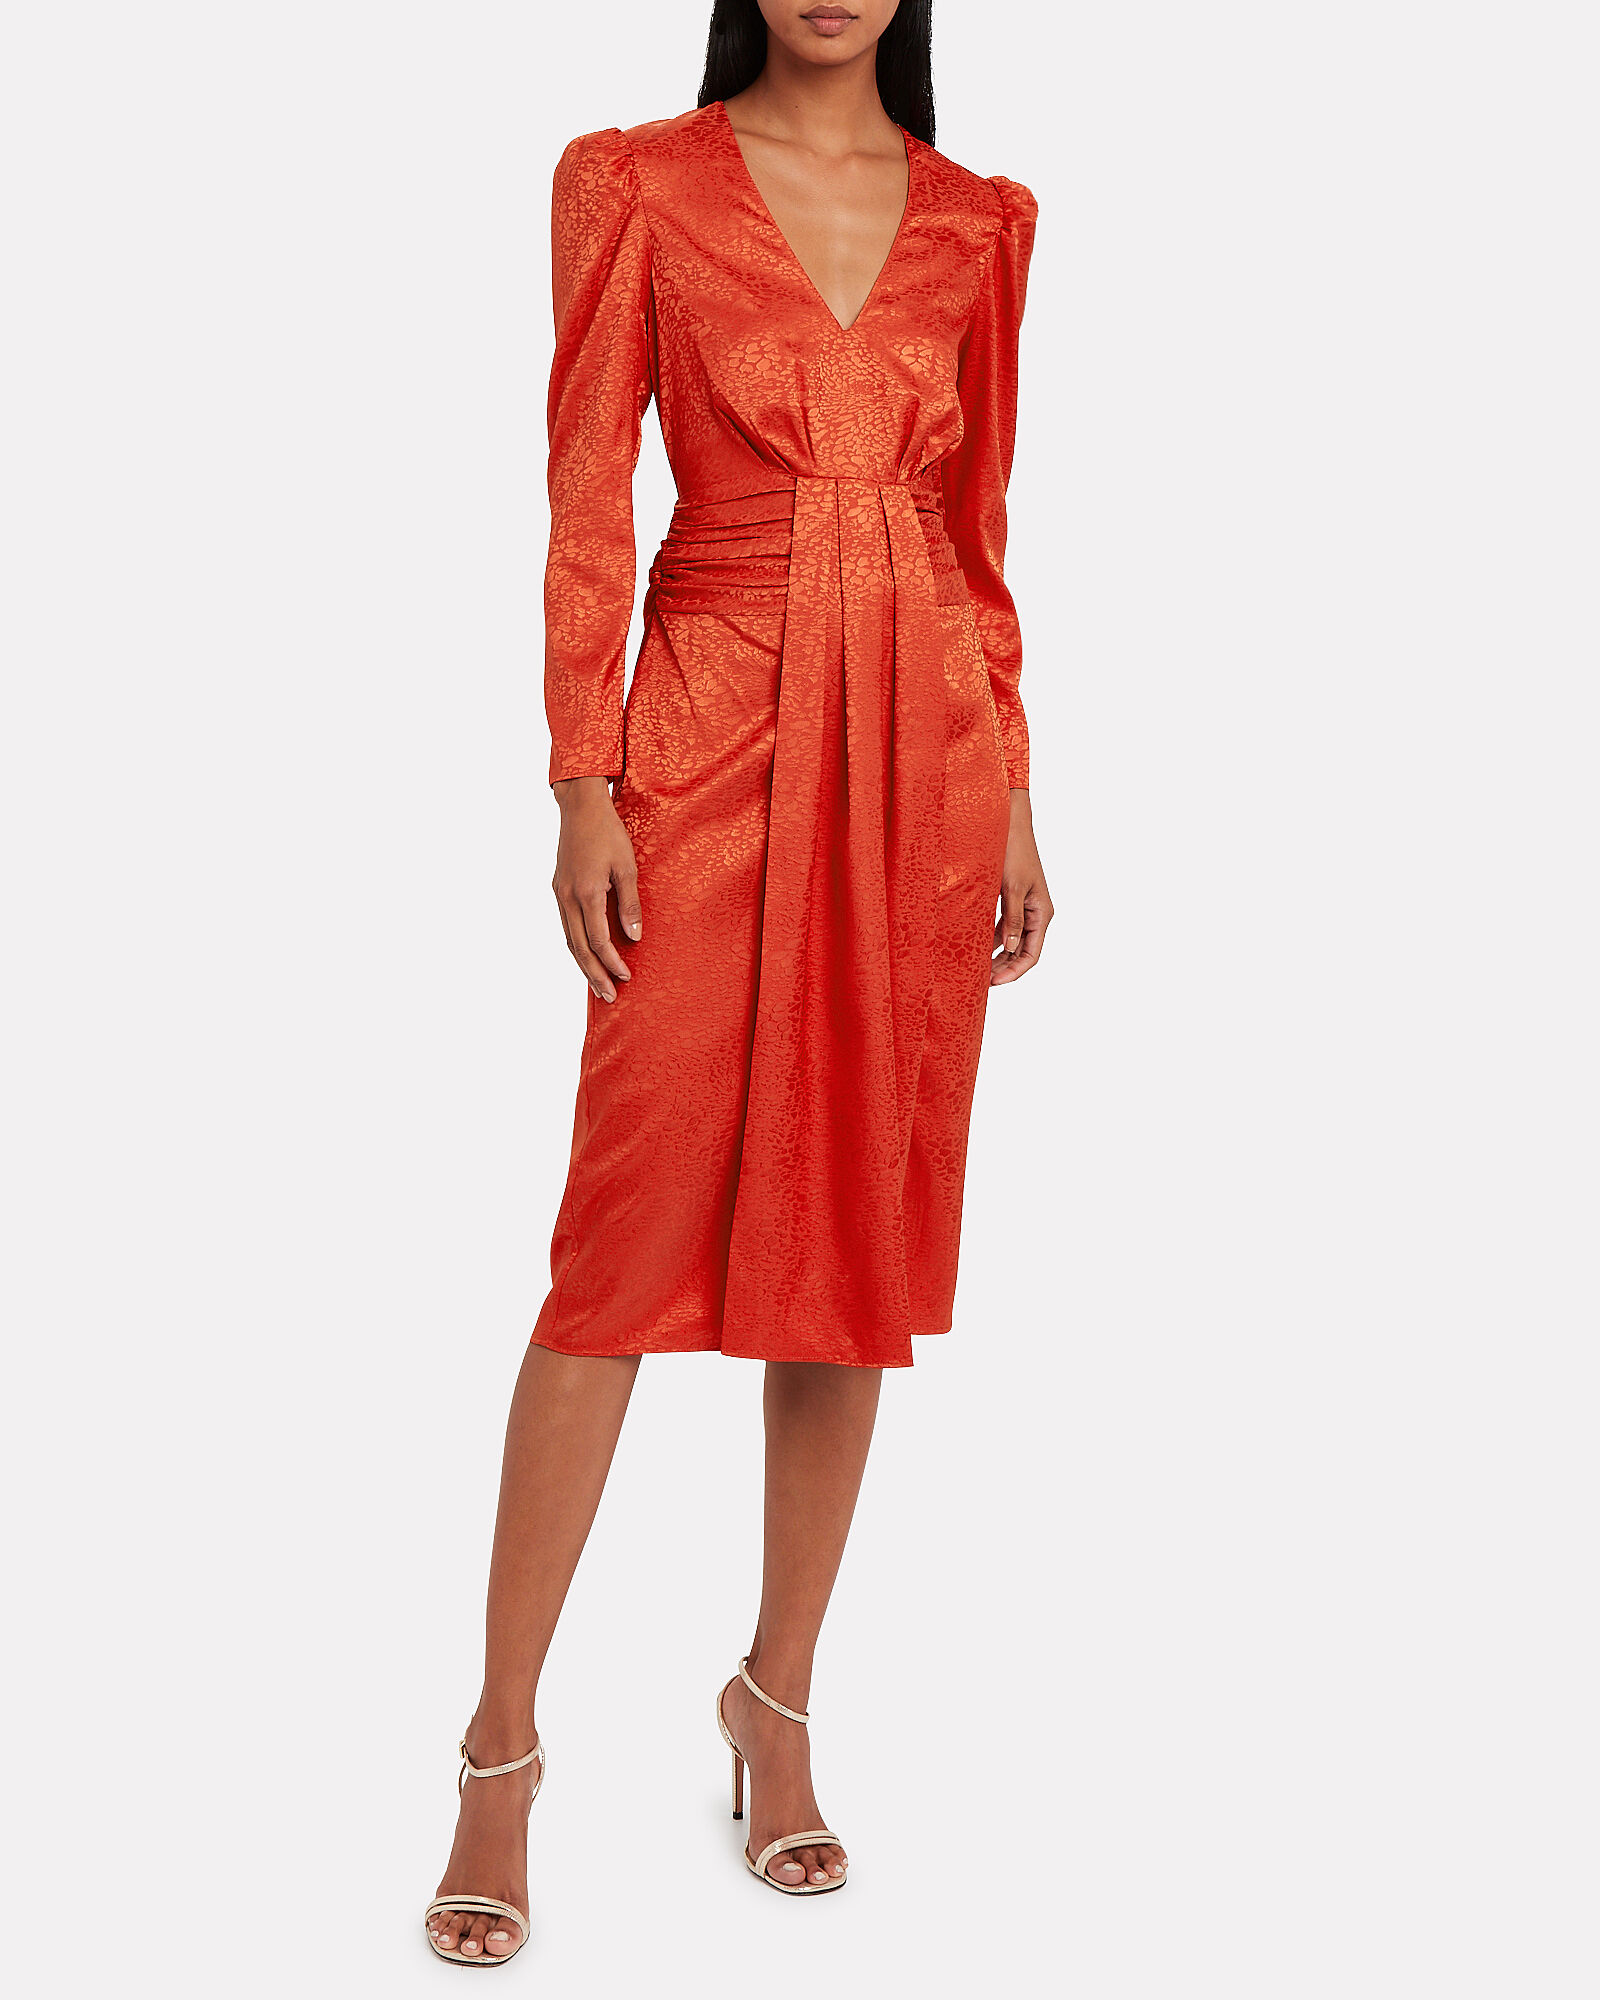 Farrow Satin Jacquard Dress, RED, hi-res